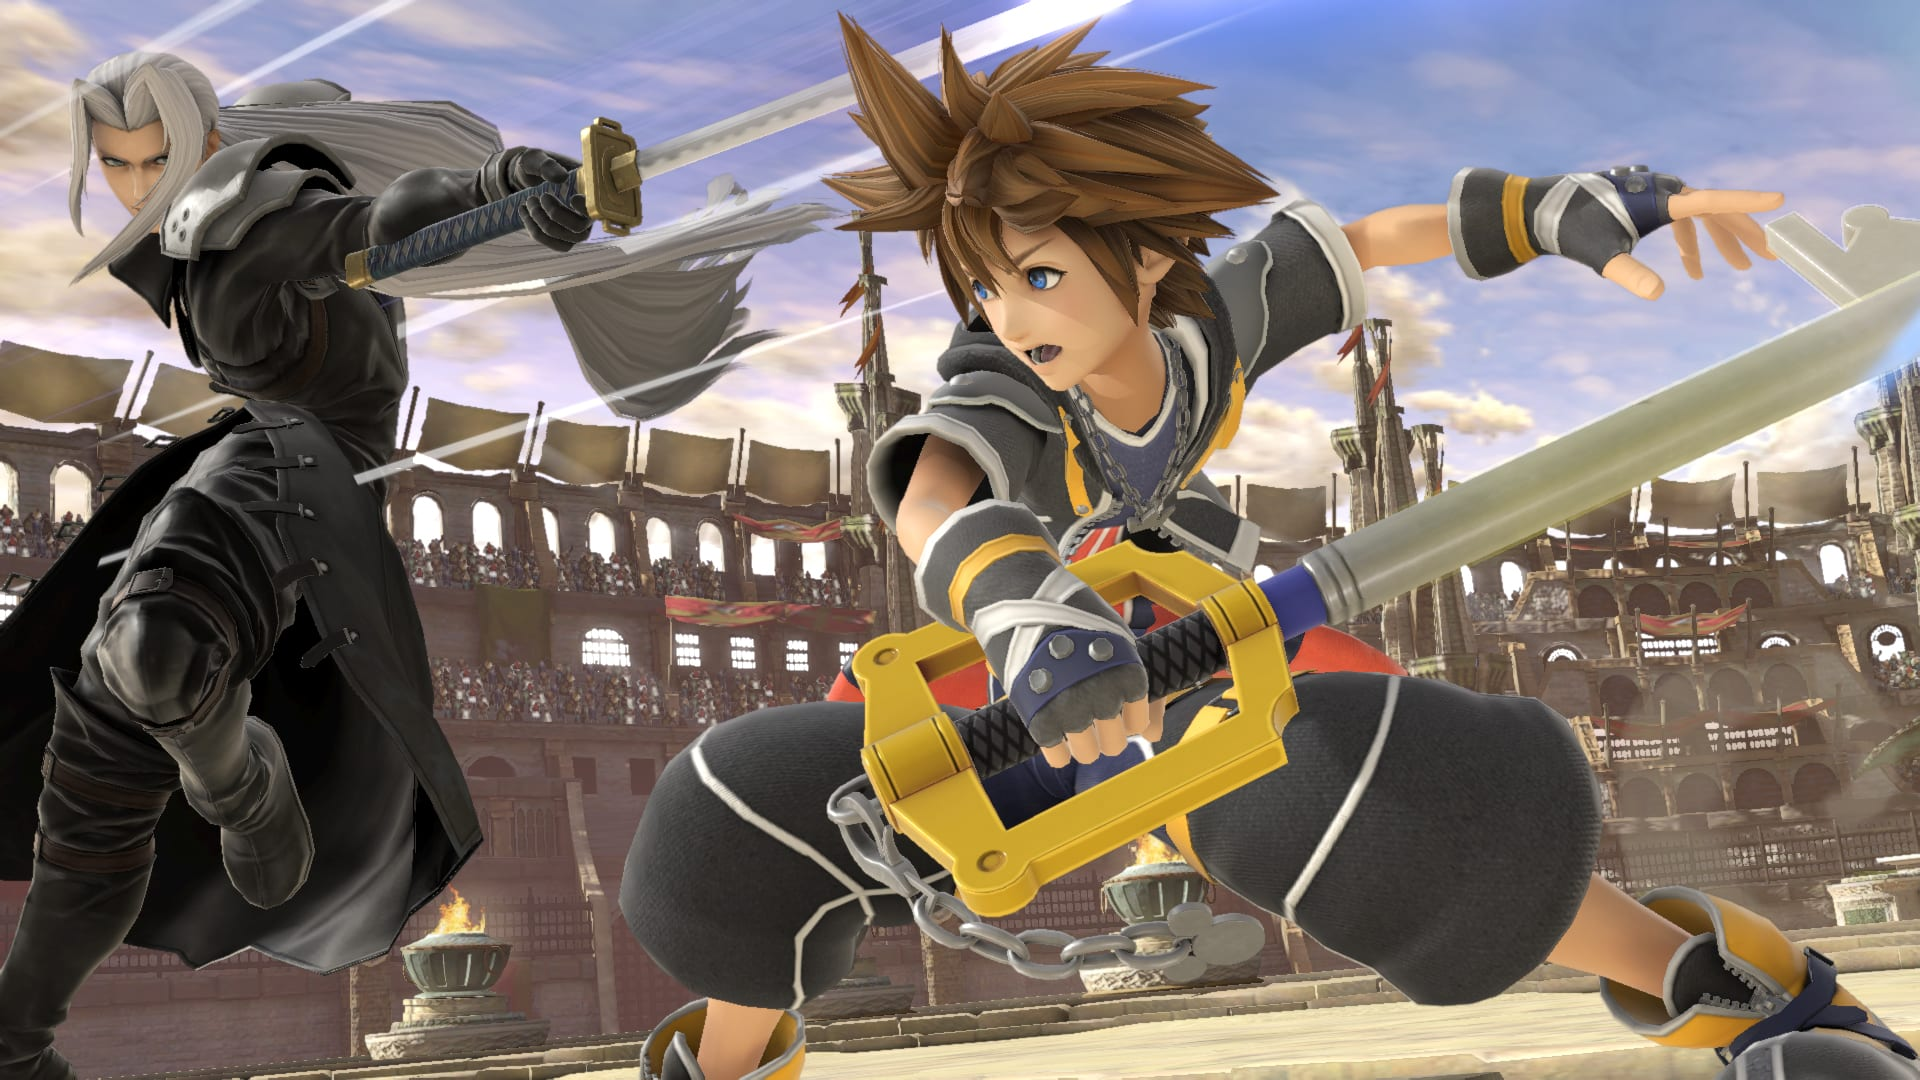 Sora from Kingdom Hearts revealed as the final DLC fighter coming to Super  Smash Bros Ultimate - Nintendo - Official Site